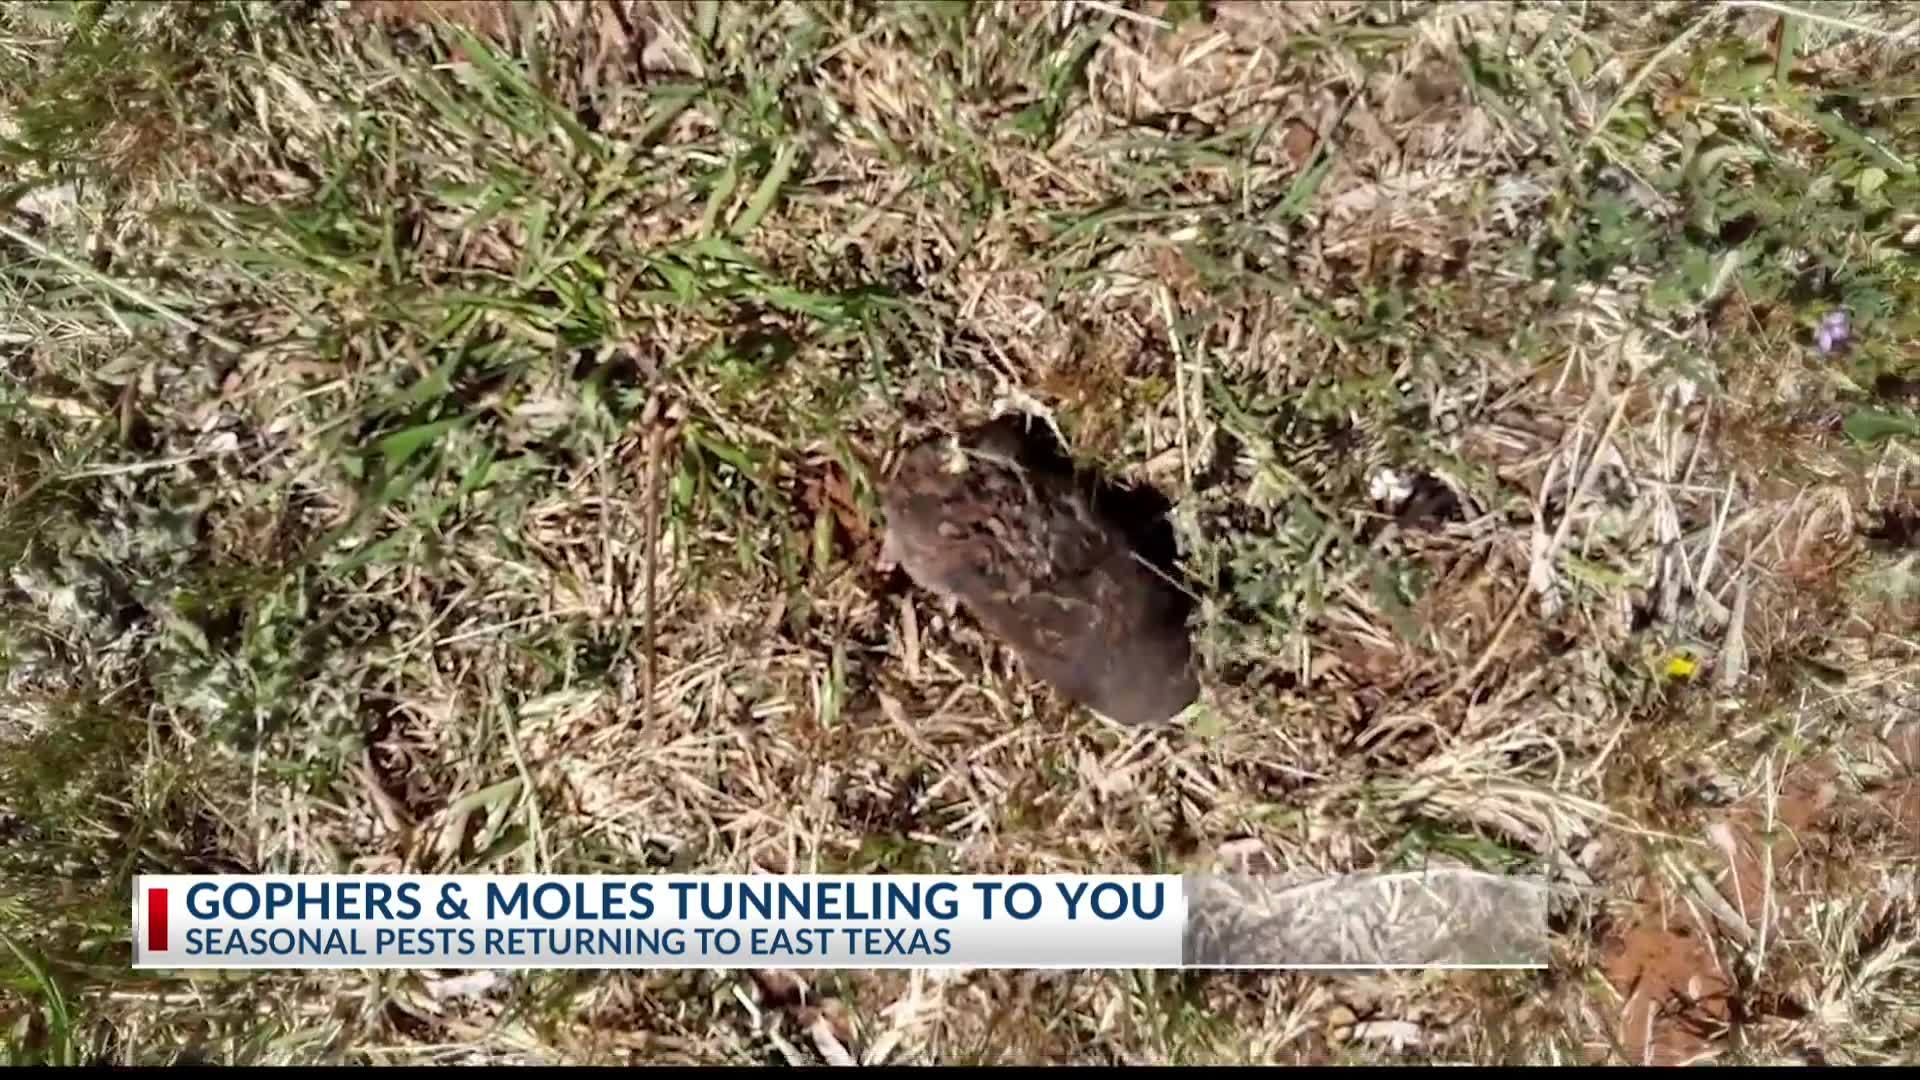 Gophers___Moles_tunneling_to_you_8_20190521234642